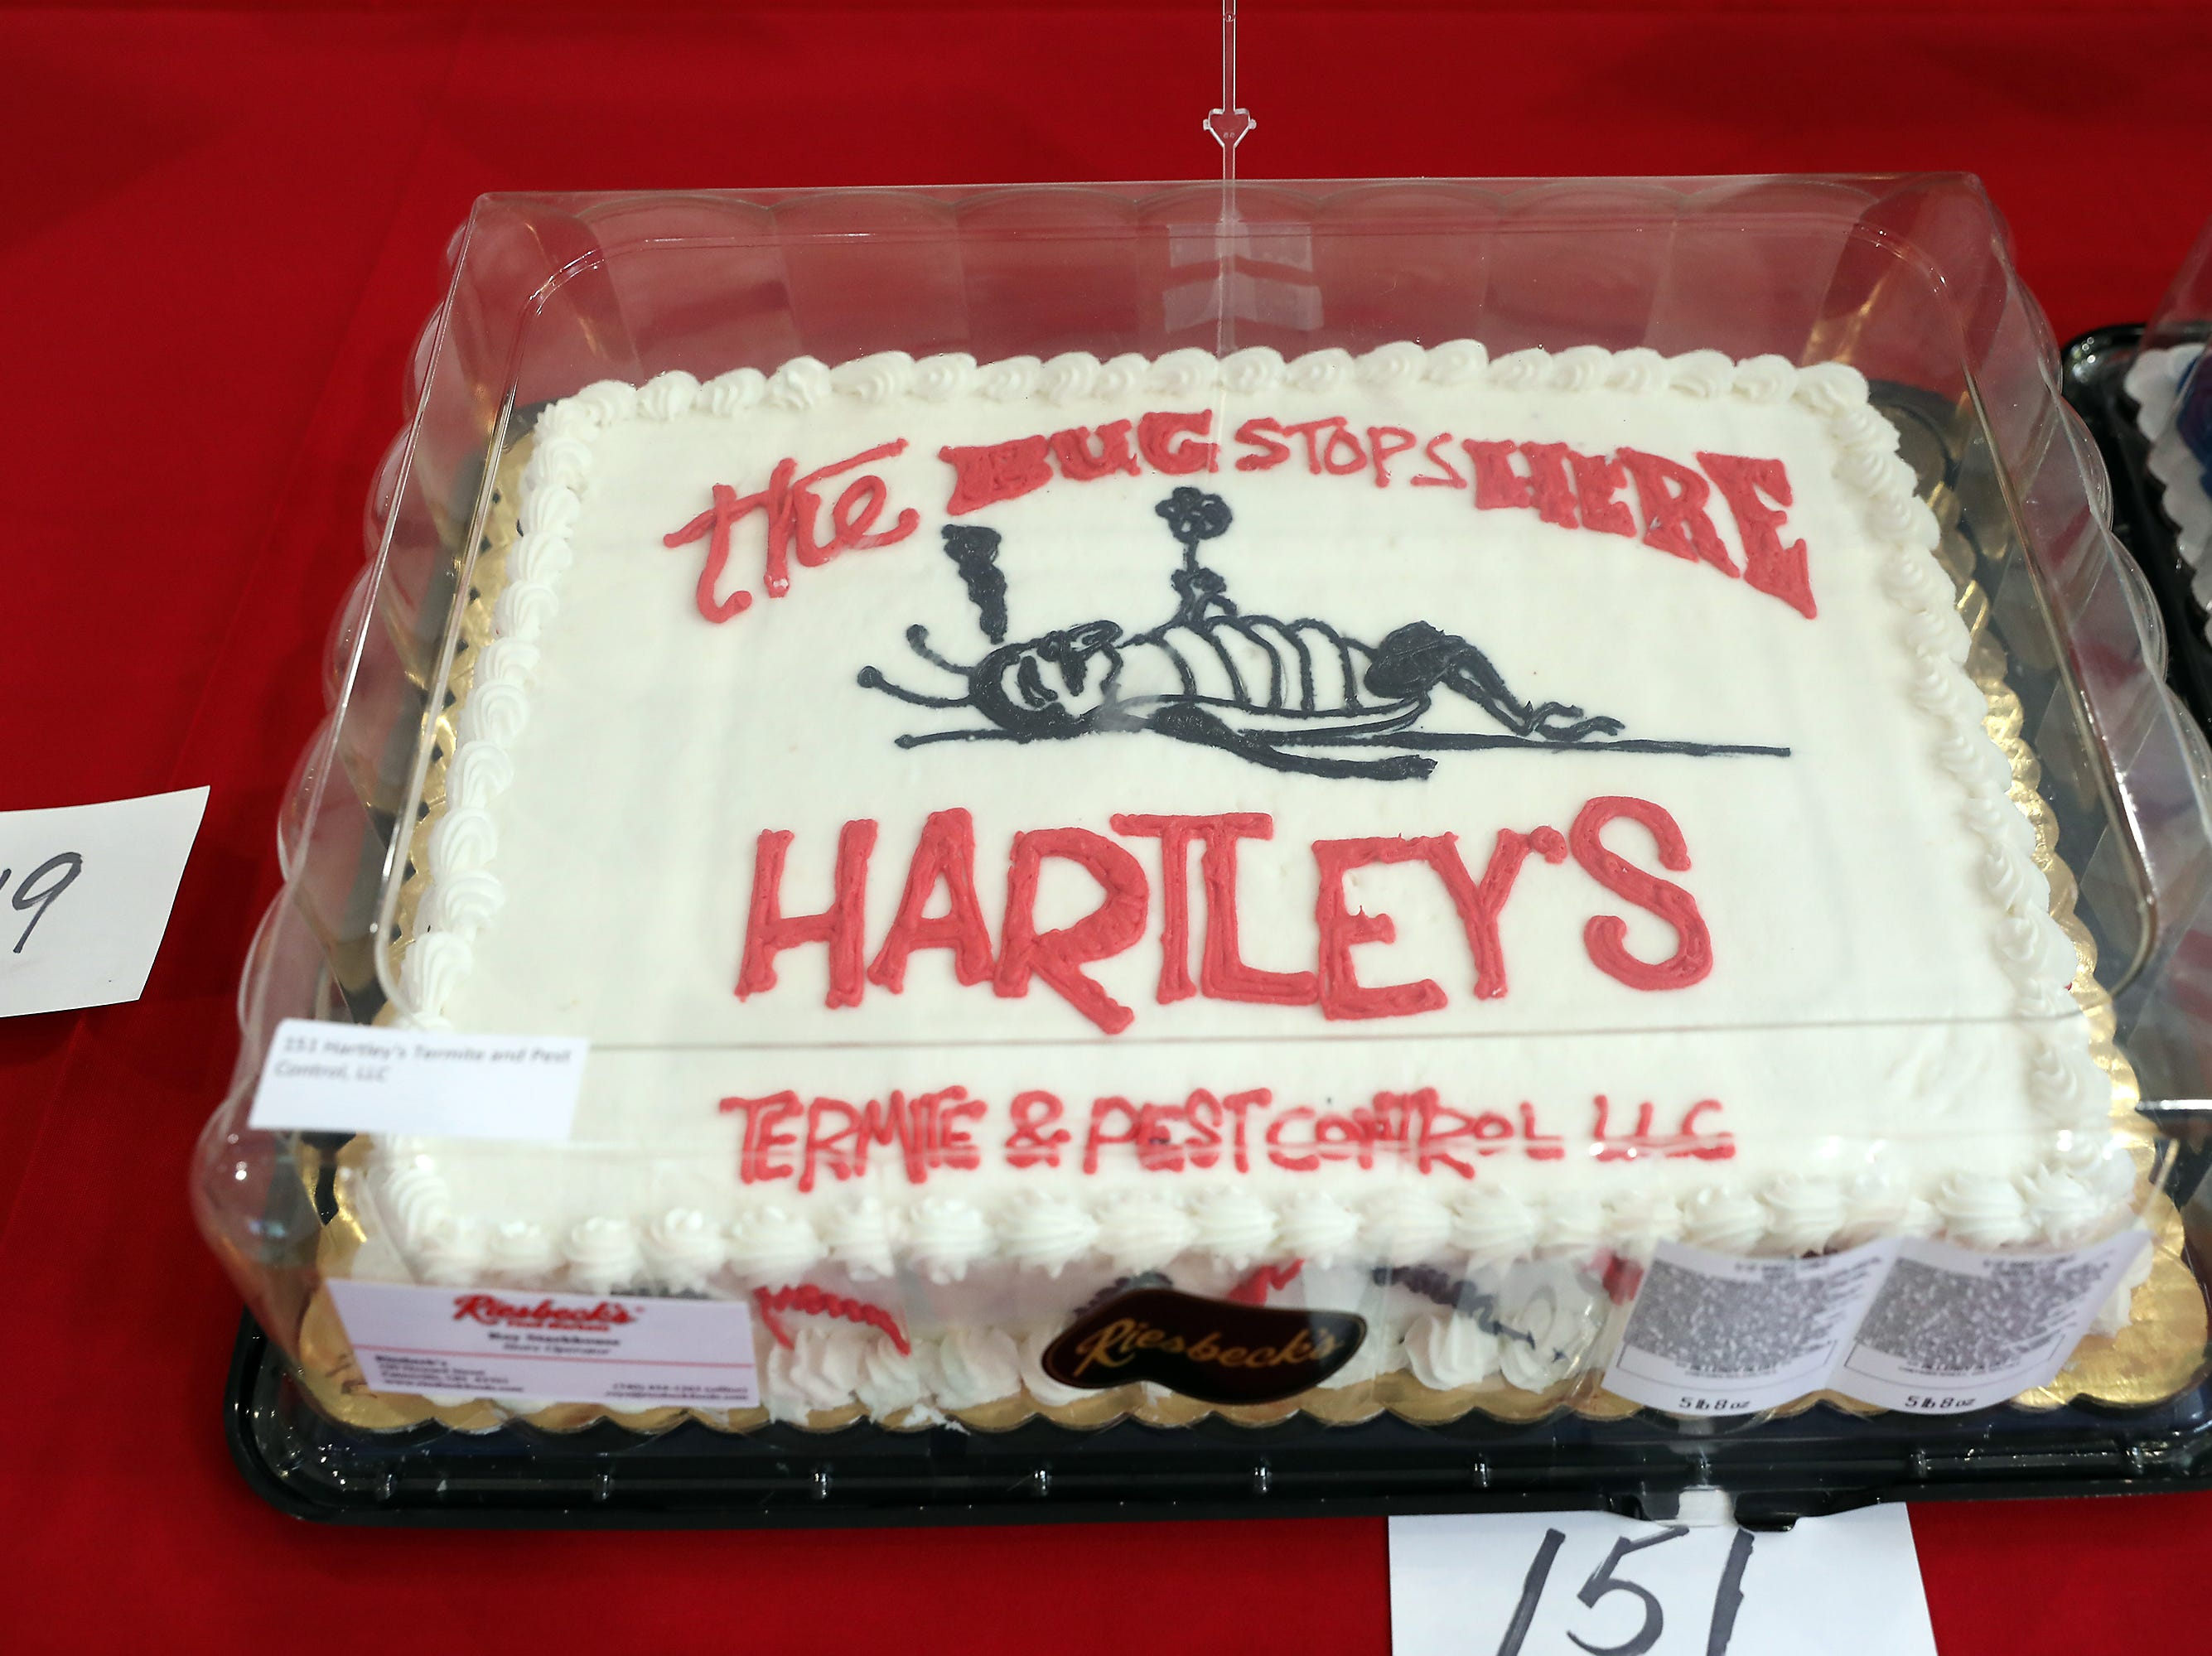 3:30 P.M. Thursday cake 151 Hartley's Termite and Pest Control - $100 for services